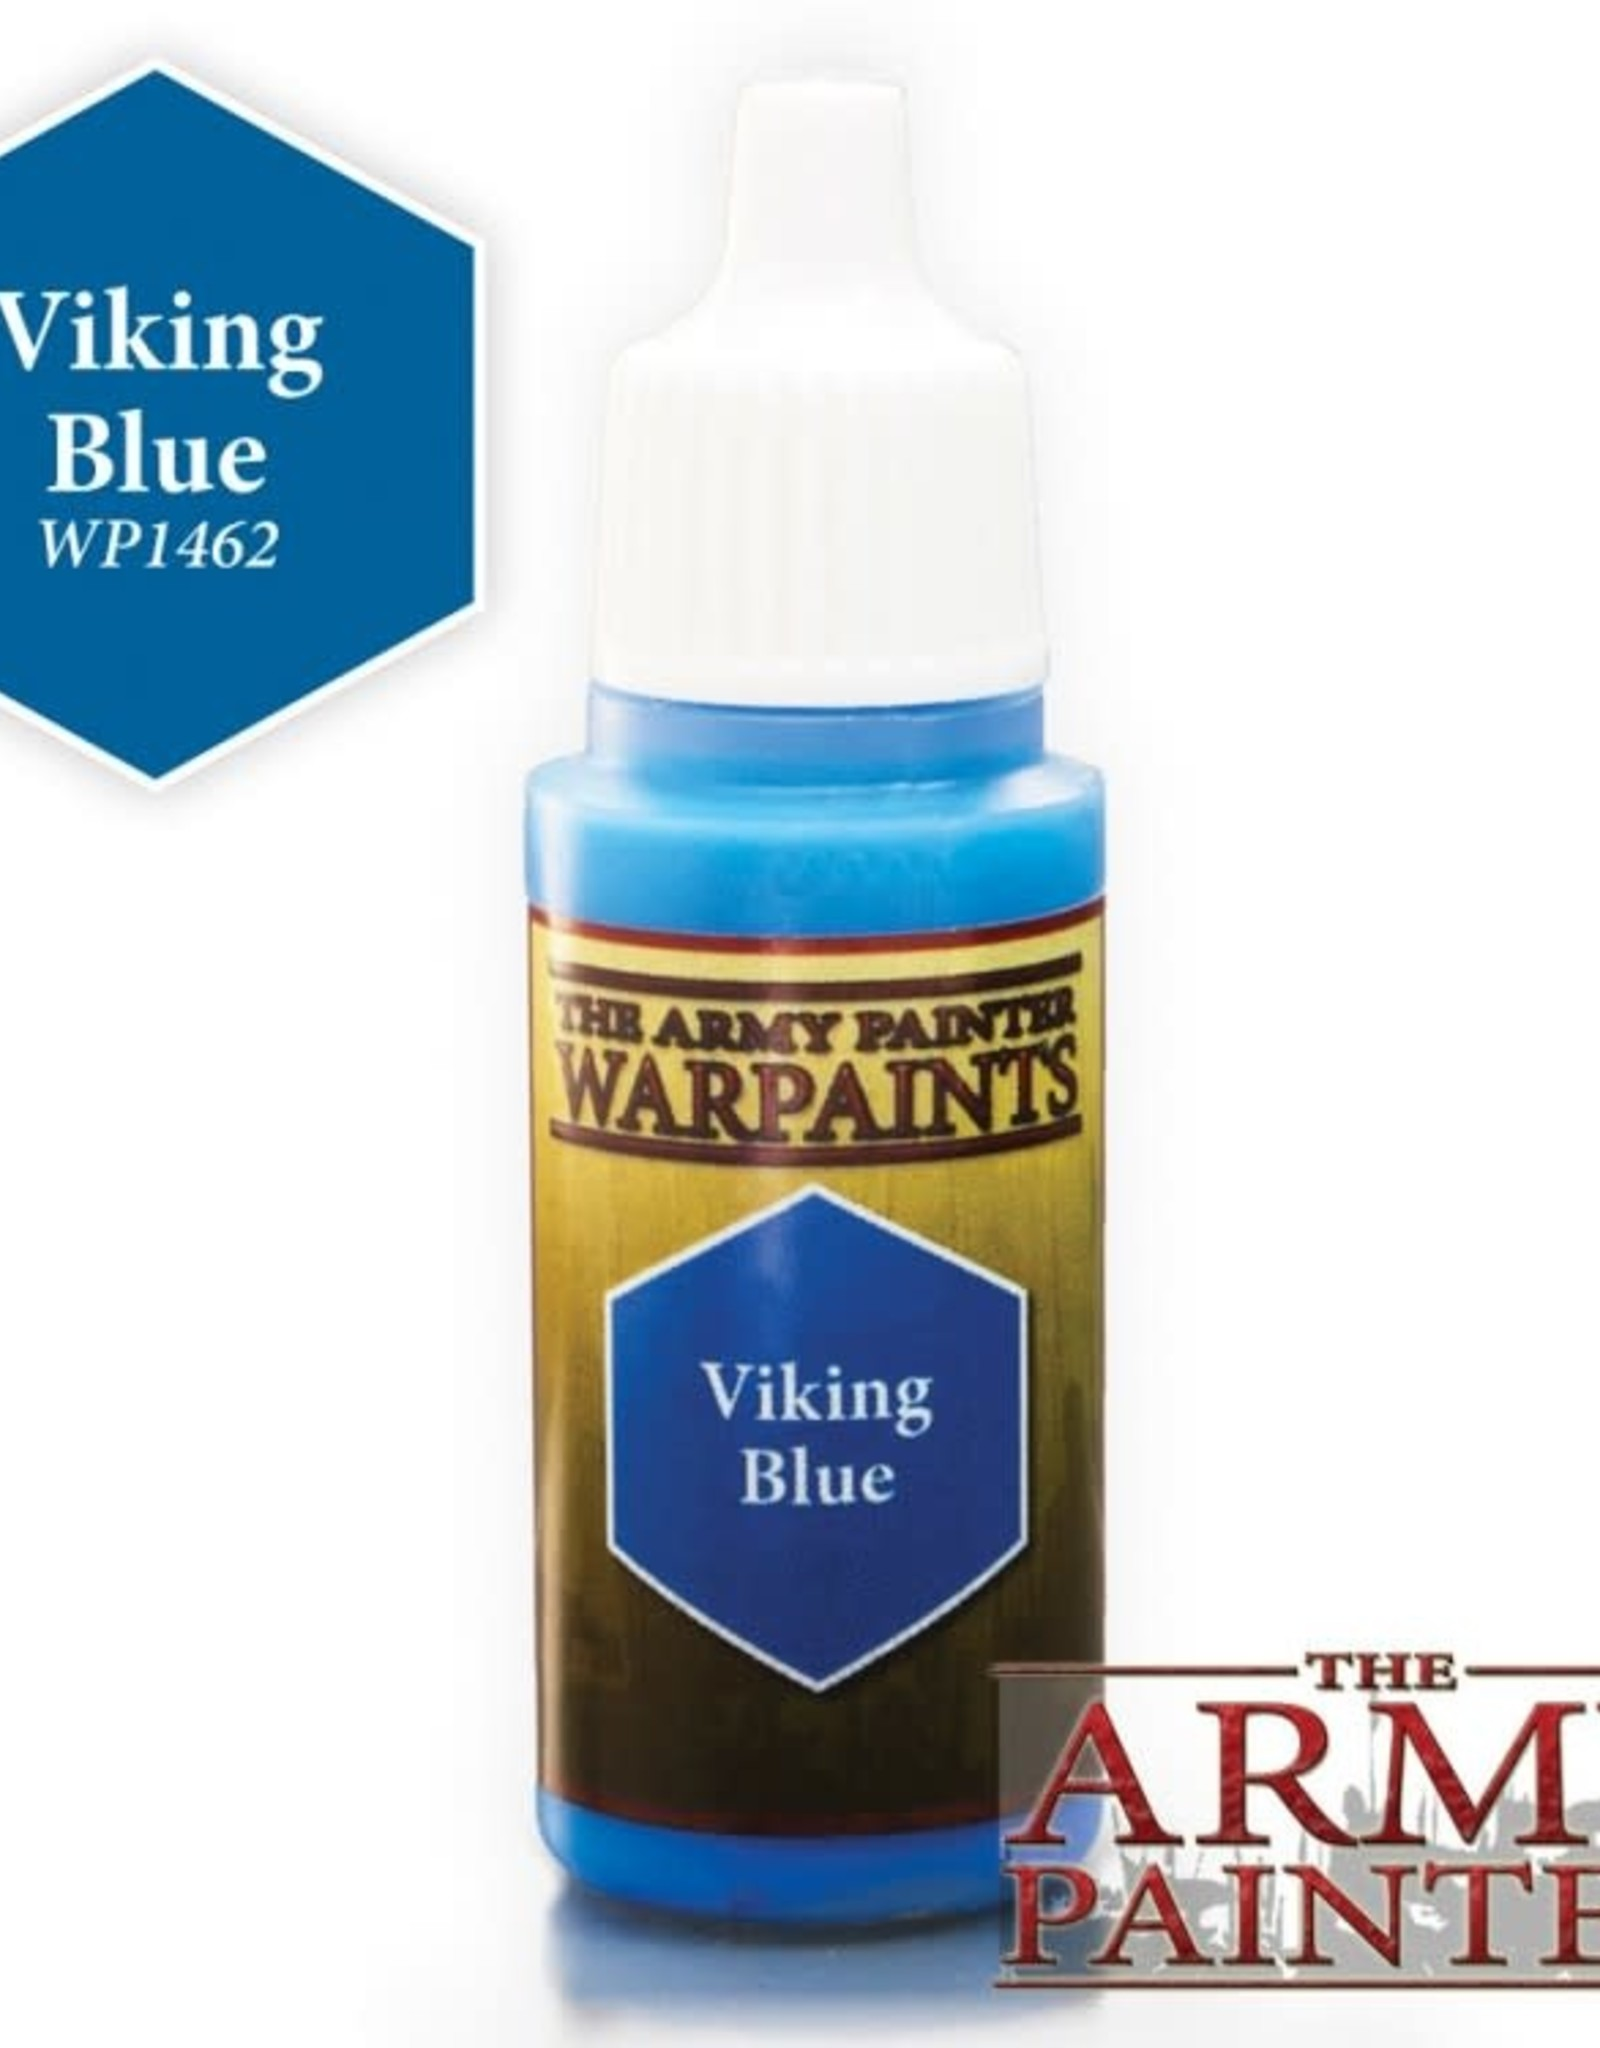 The Army Painter Warpaints - Viking Blue